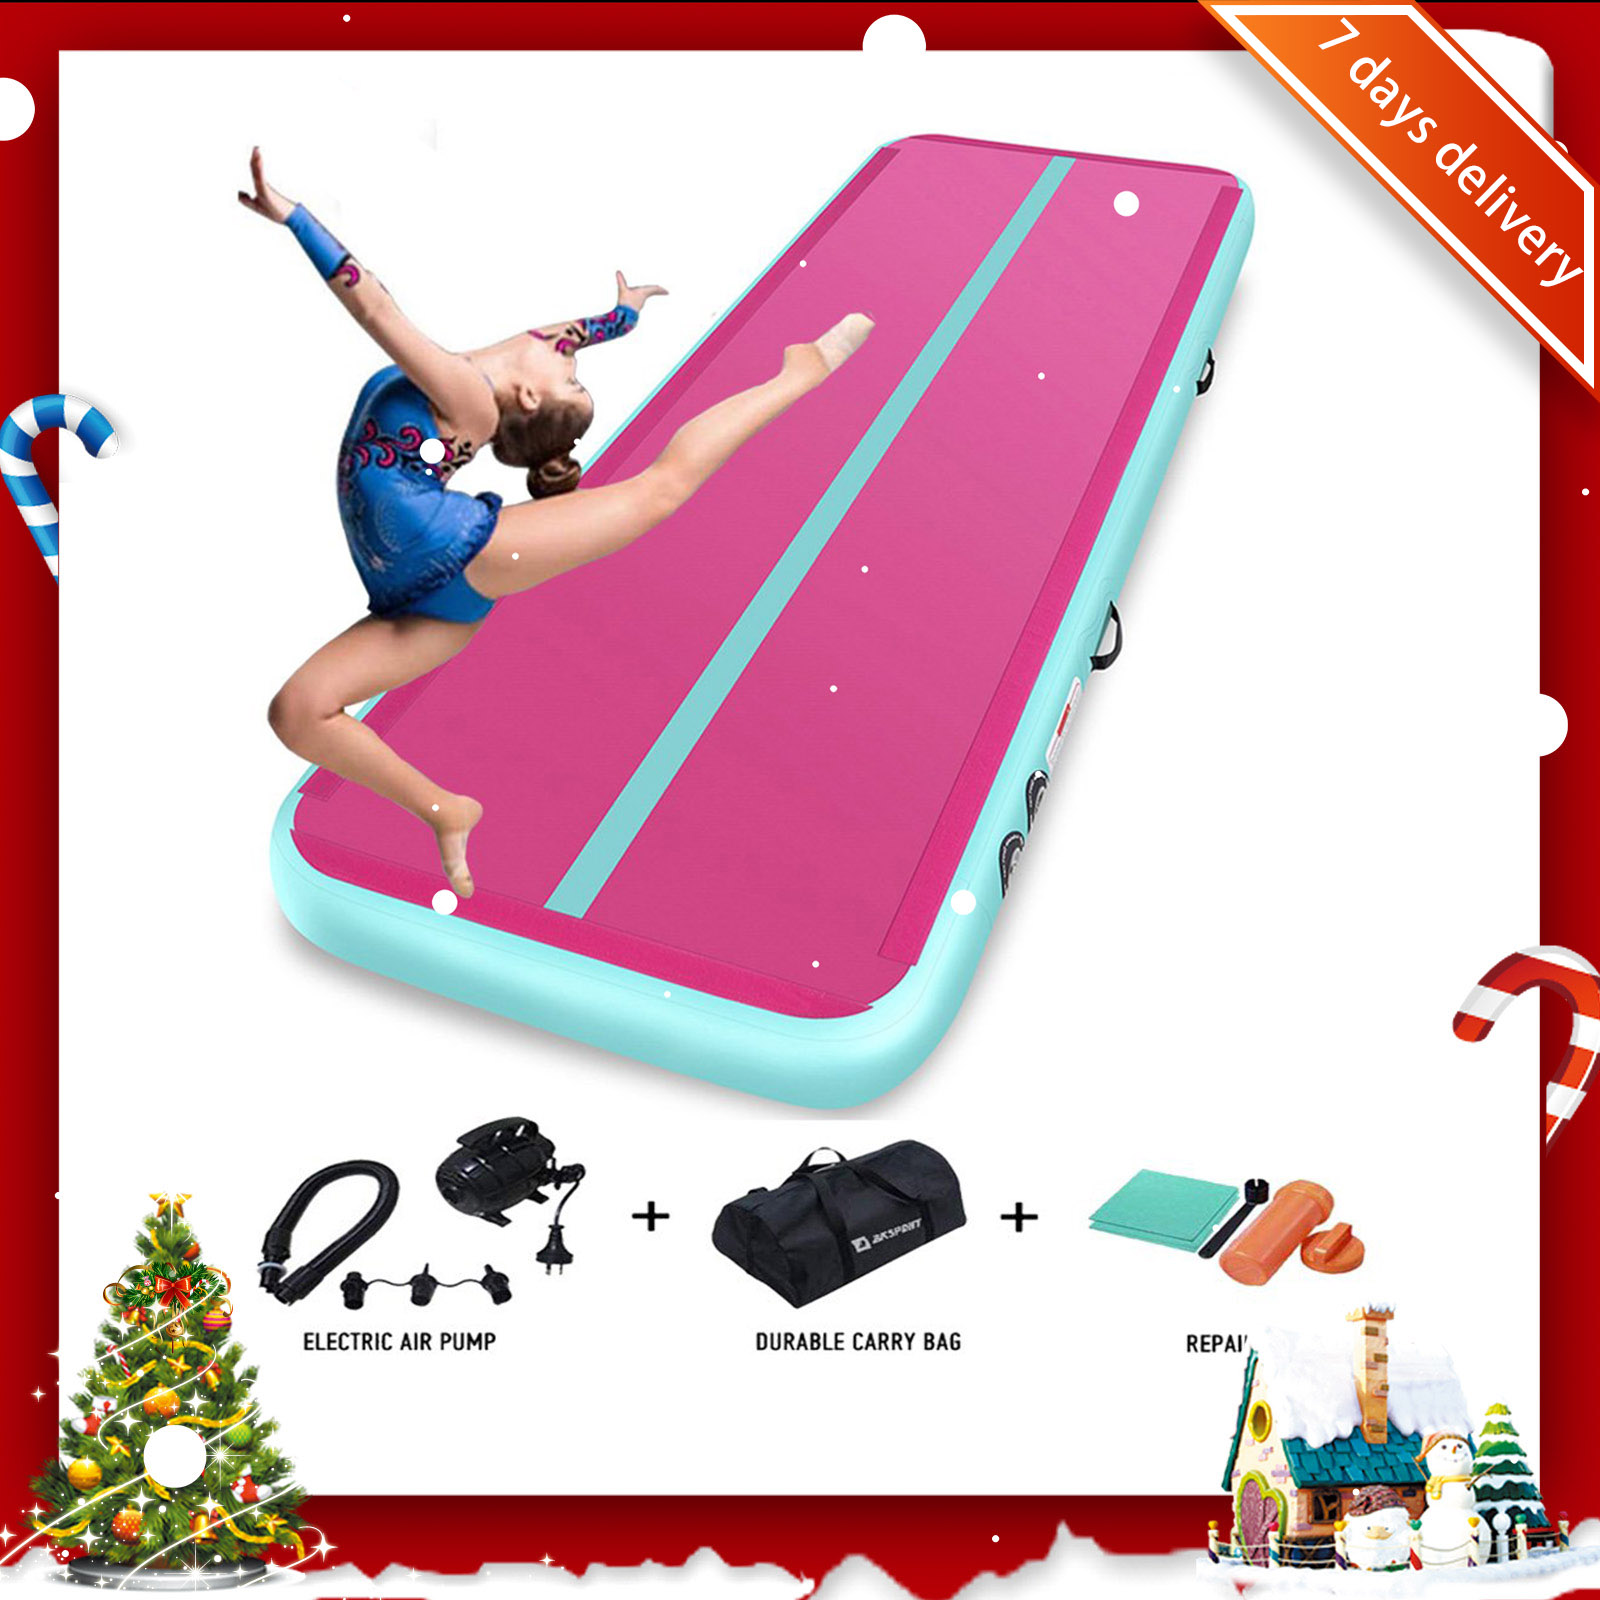 Rimdoc 6M Inflatable Air Track Yoga Olympics Tumbling Airtrack Floor Air Gym Yoga <font><b>Mat</b></font> Electronic Pump for <font><b>Kids</b></font> Christmas Gifts image